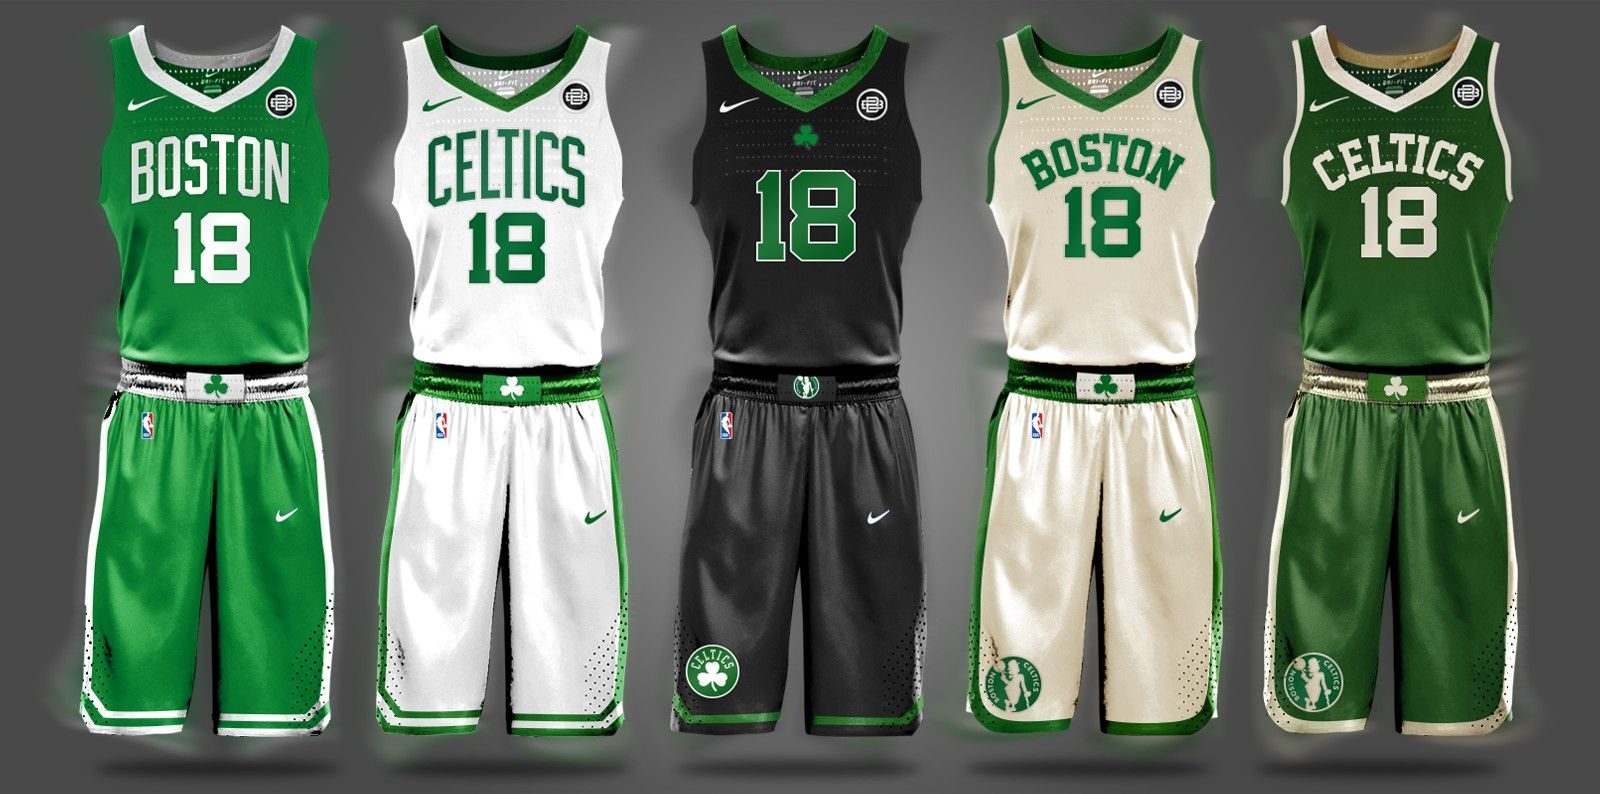 54074ed80 Boston Celtics jerseys